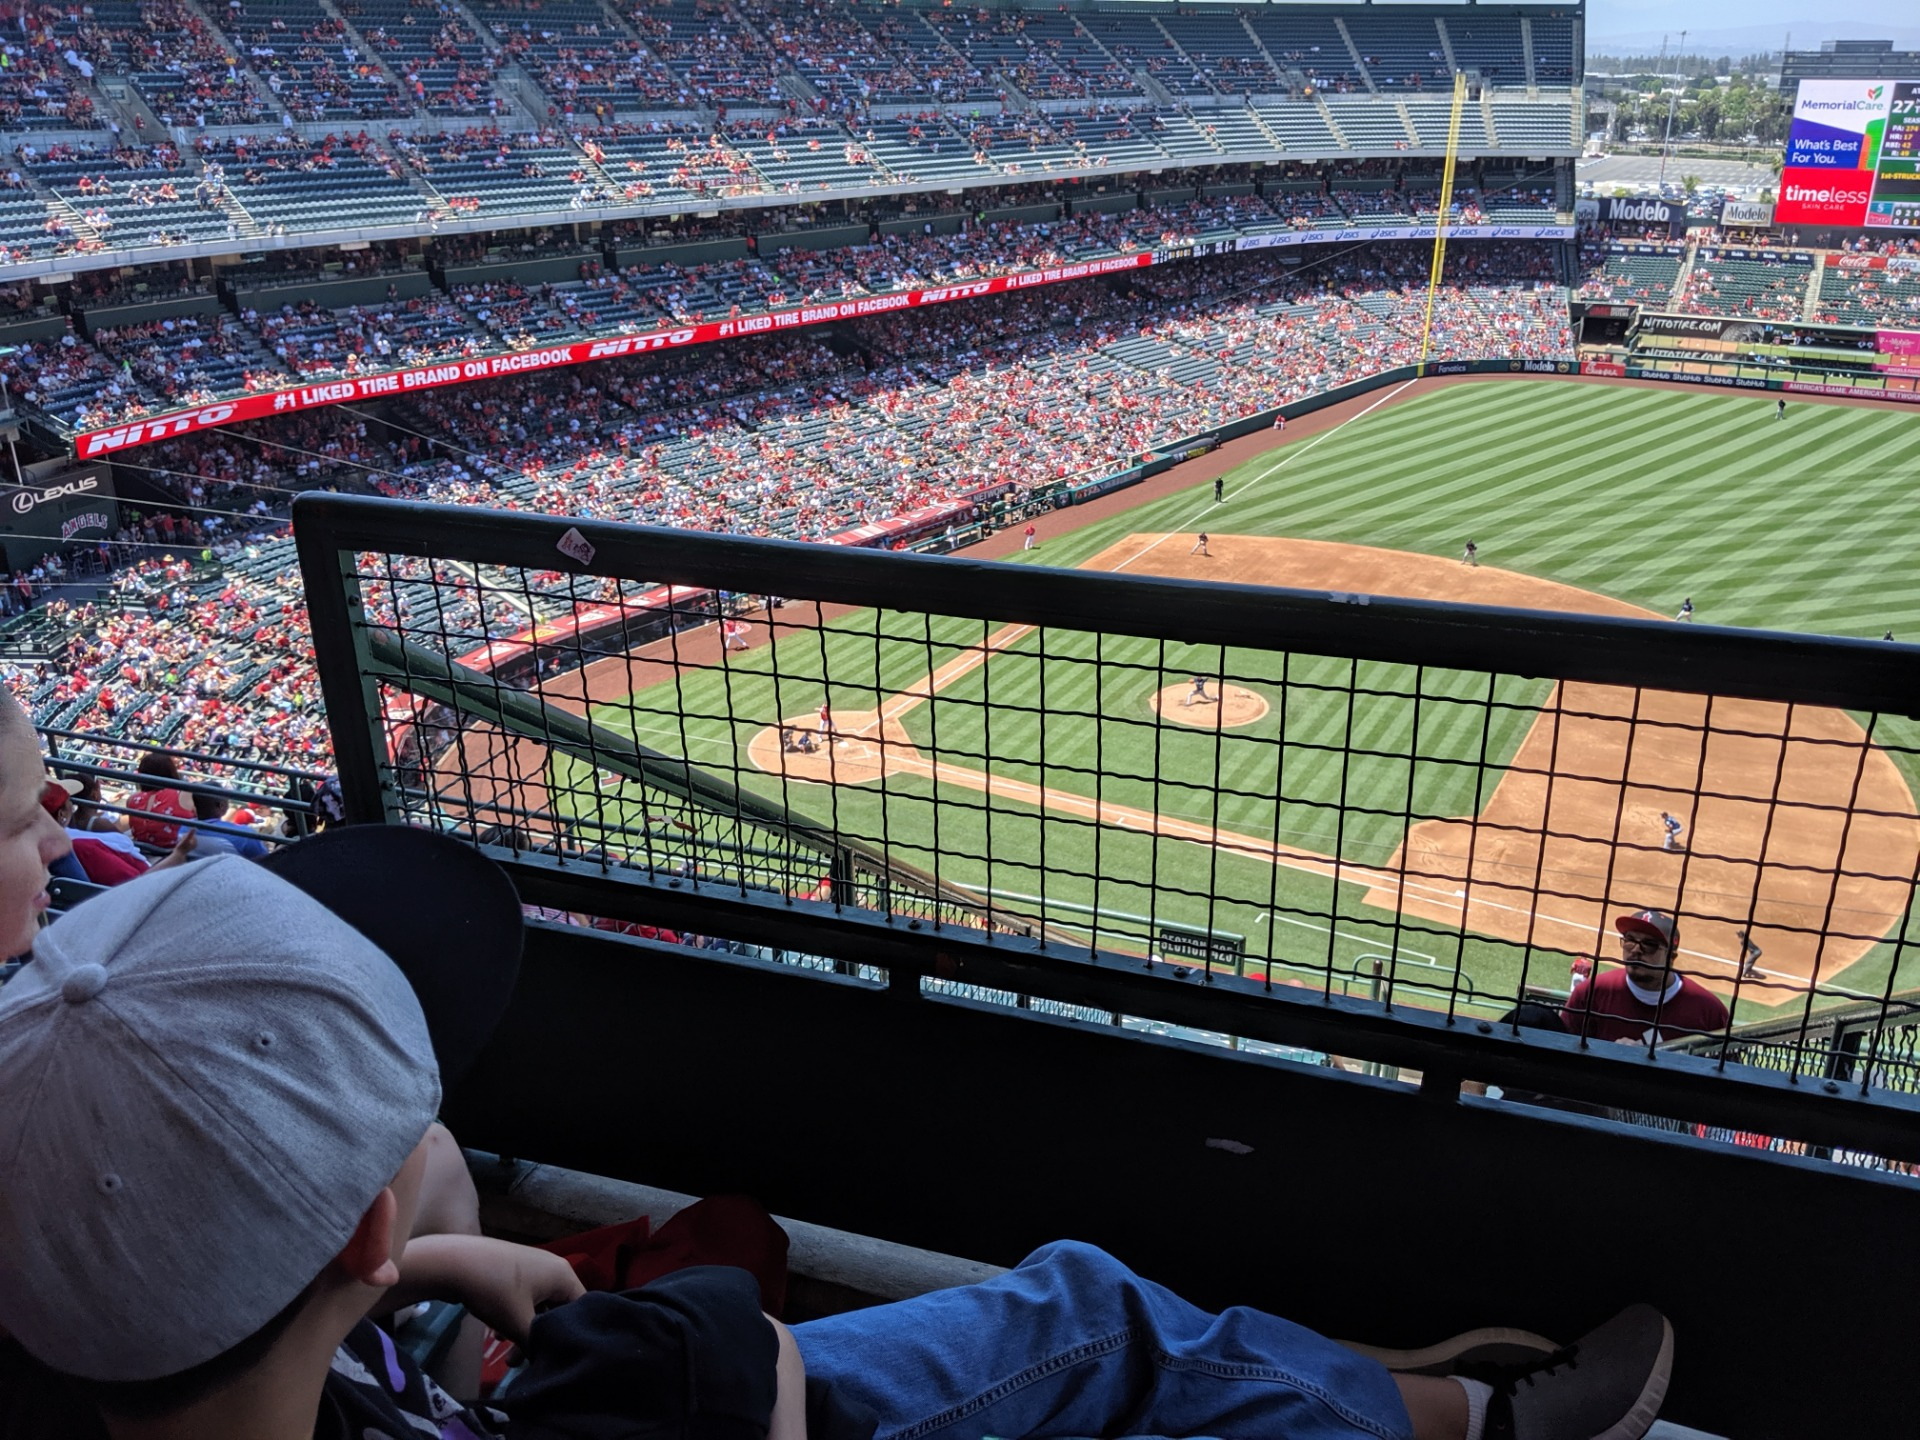 Angel Stadium, section V529, row F, seat 3 - Los Angeles